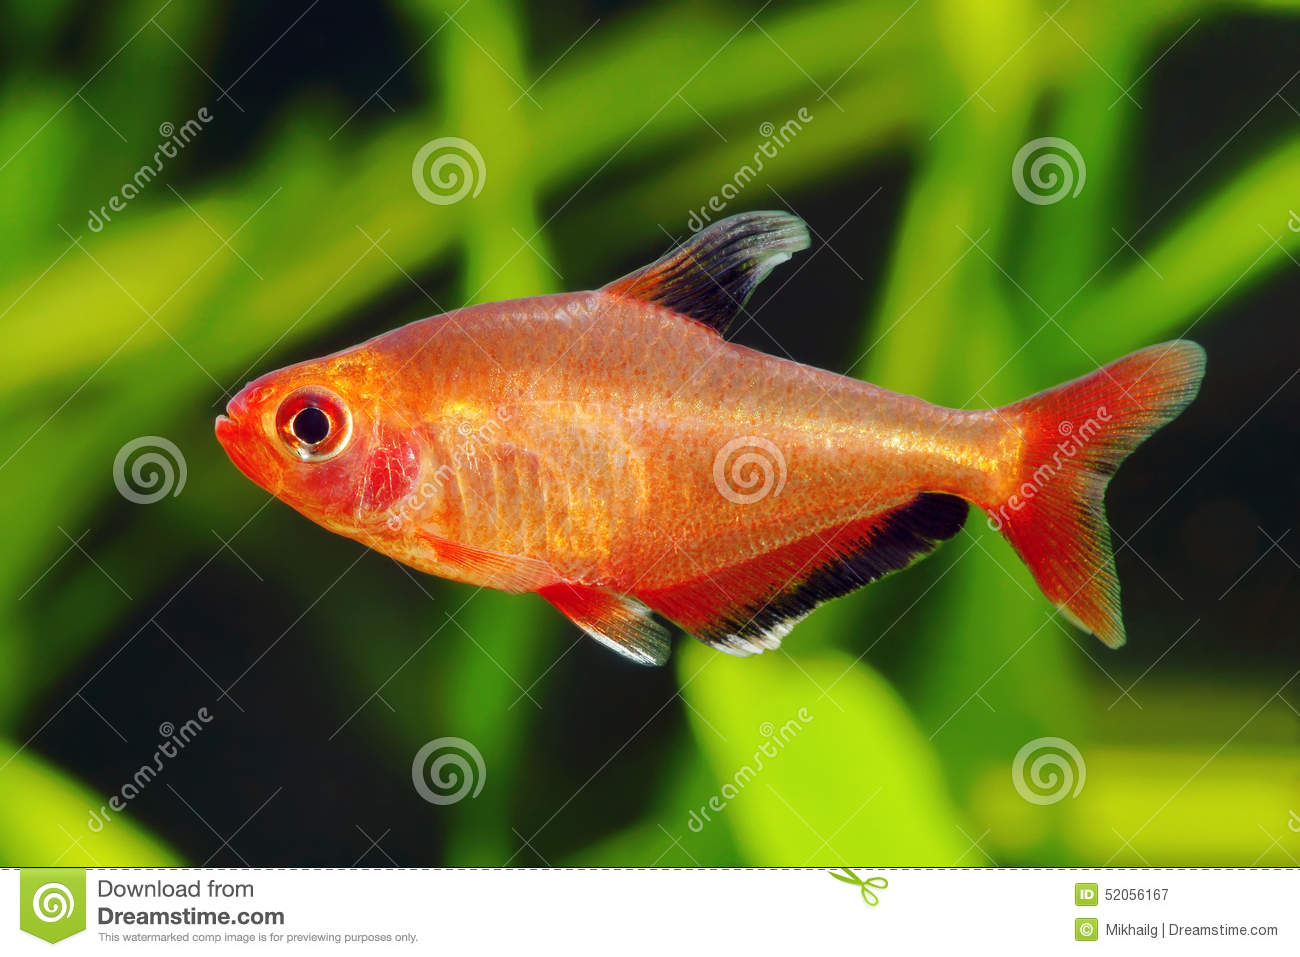 Red Phantom Tetra Fish Stock Photo - Image: 52056167